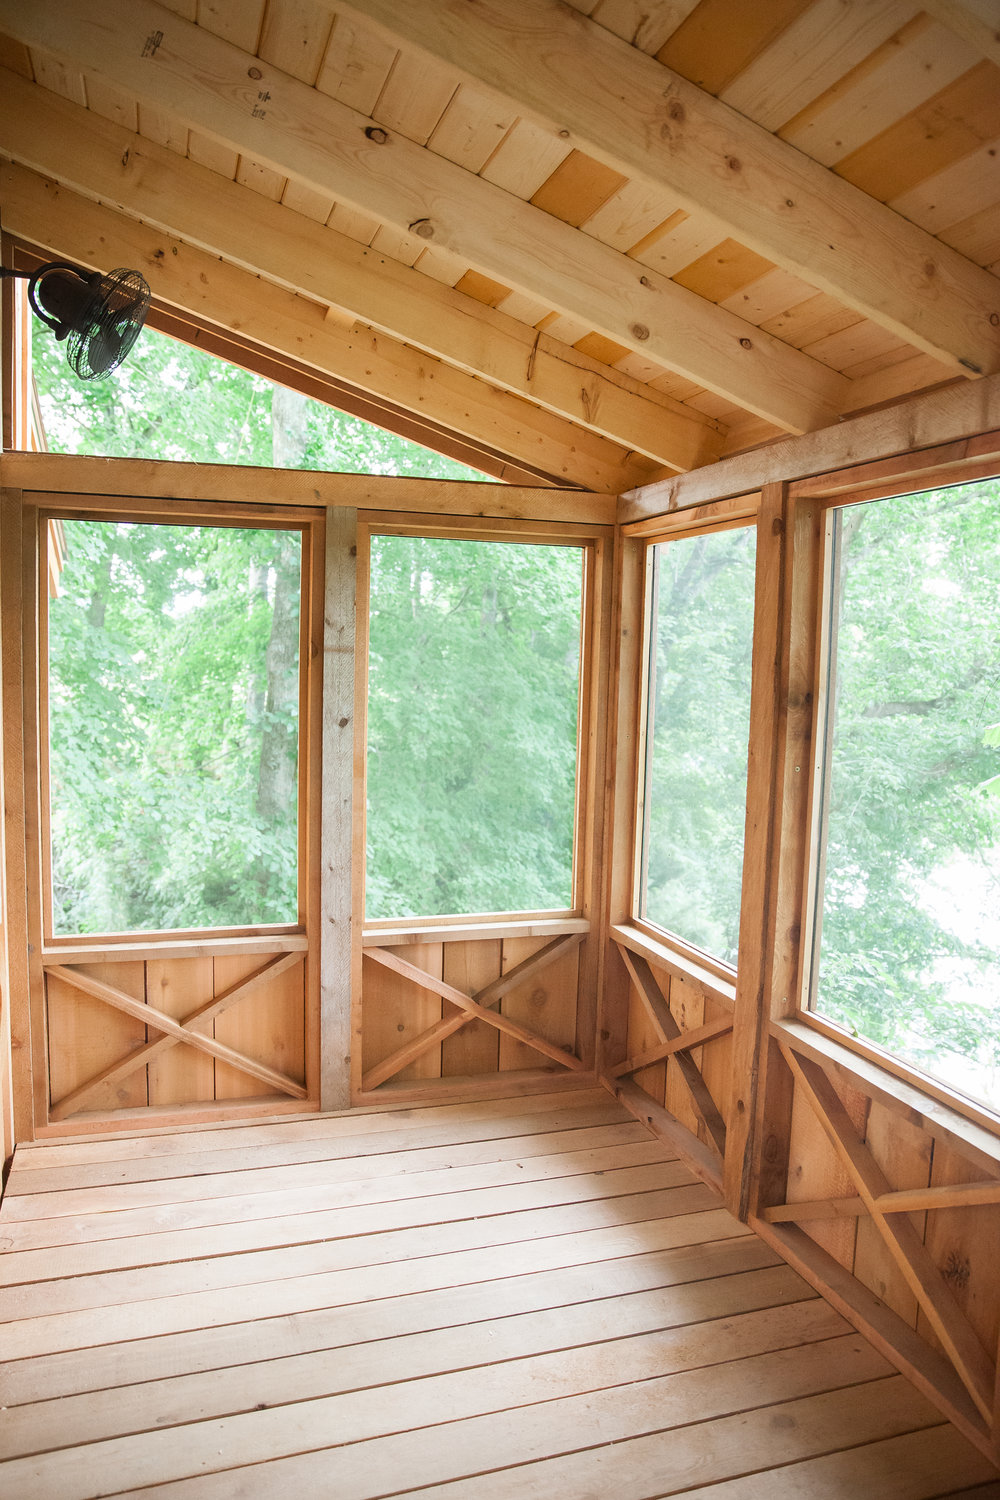 The screened-in porch hangs directly above the river.